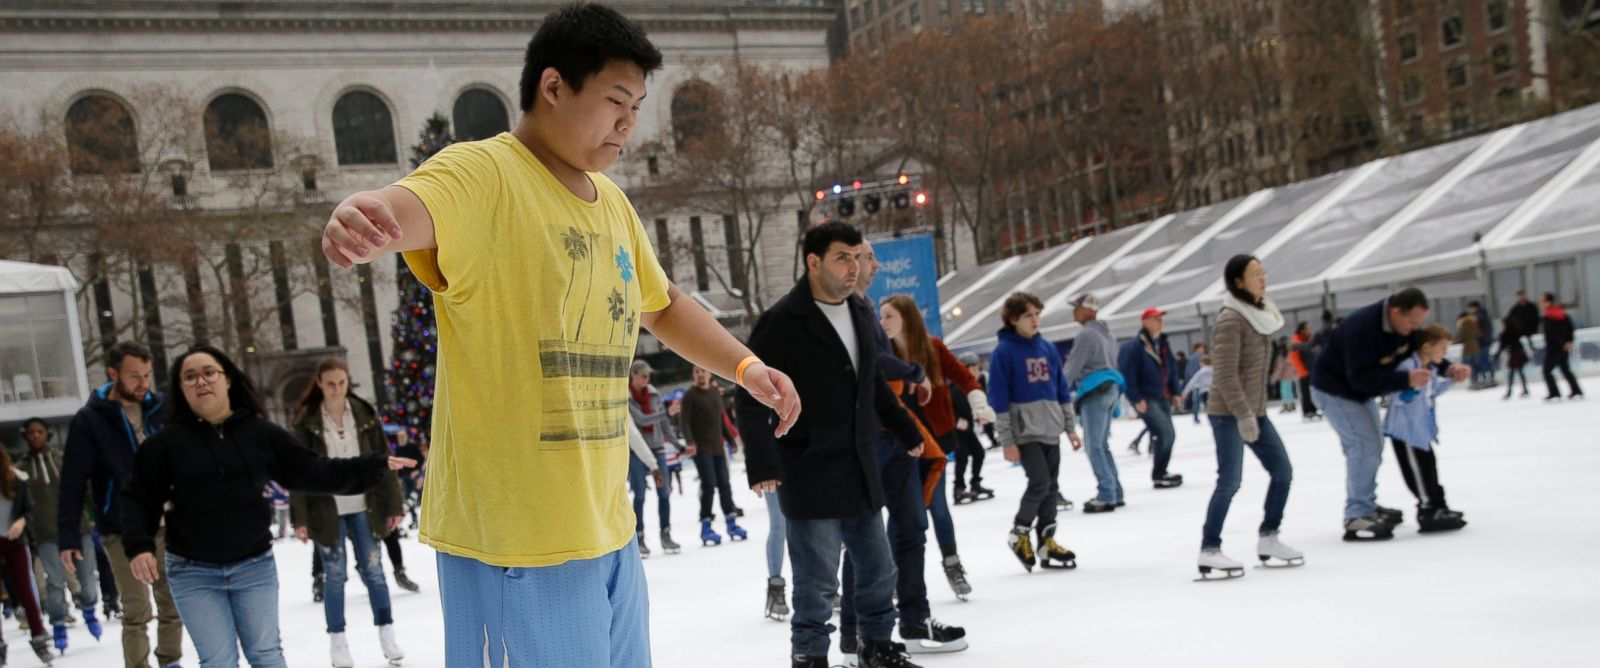 PHOTO: Ian Chan, 15, wears shorts and t-shirt while ice skating at Bryant Park in New York, Dec. 23, 2015.